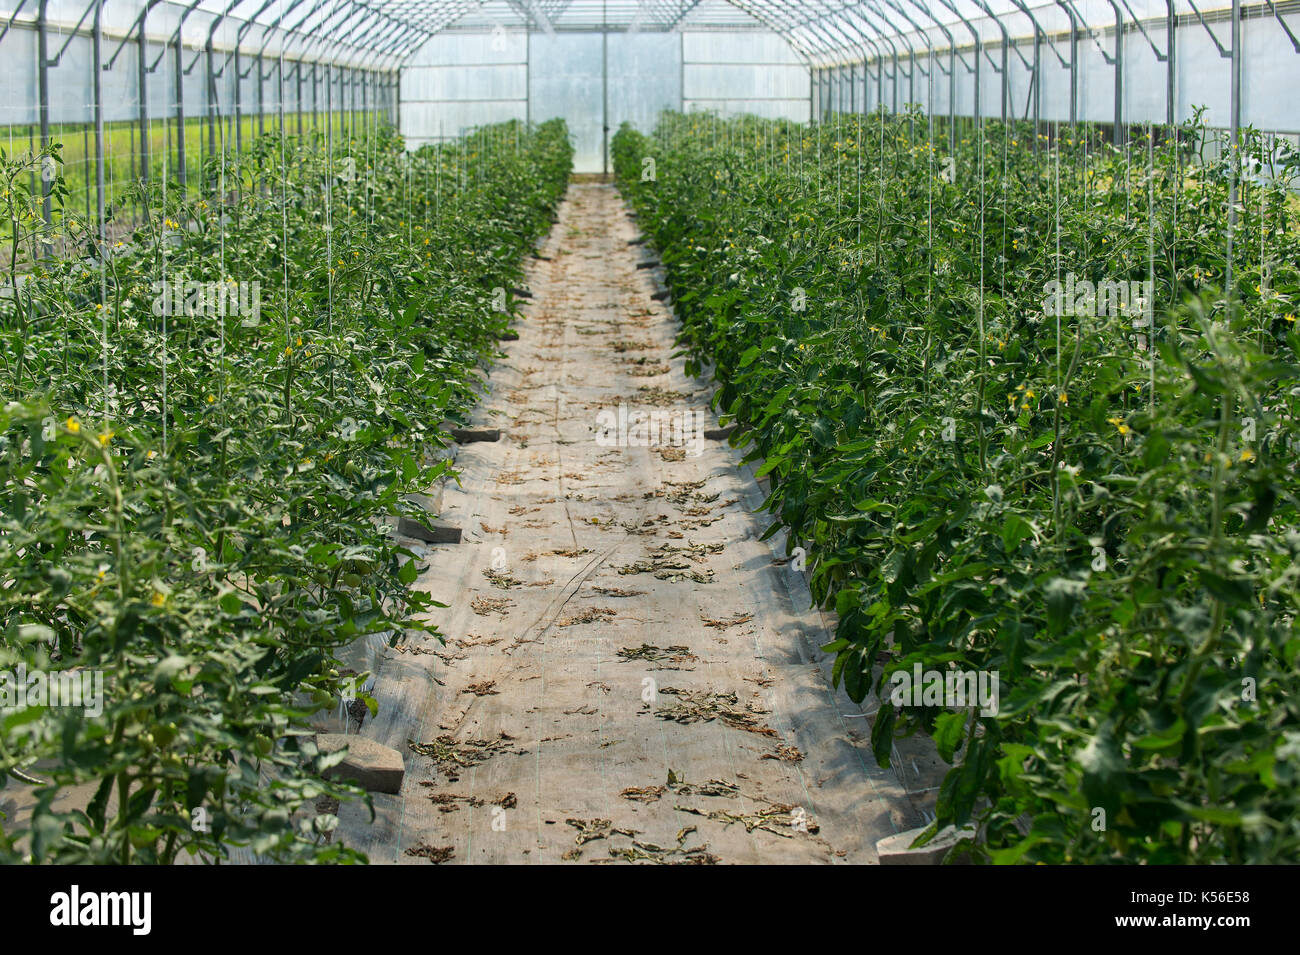 Rows of vegetable growing inside big industrial greenhouse. Industrial agriculture. - Stock Image